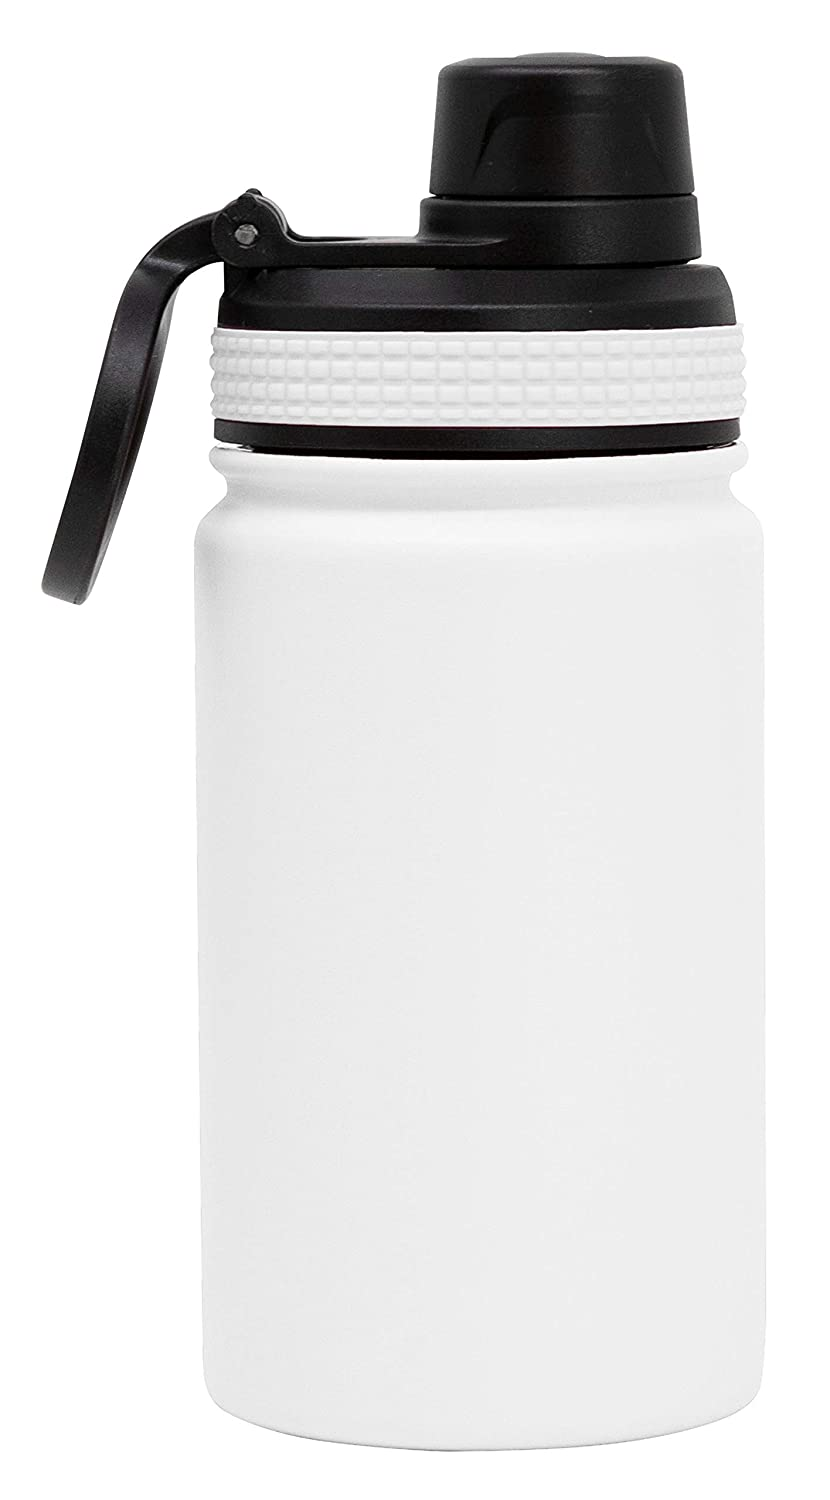 MIRA 12 oz Stainless Steel Sports Water Bottle | Metal Thermos Flask Keeps Cold for 24 Hours, Hot for 12 Hours | Wide Mouth & Double Wall Vacuum Insulated (12 oz (350 ml), White)